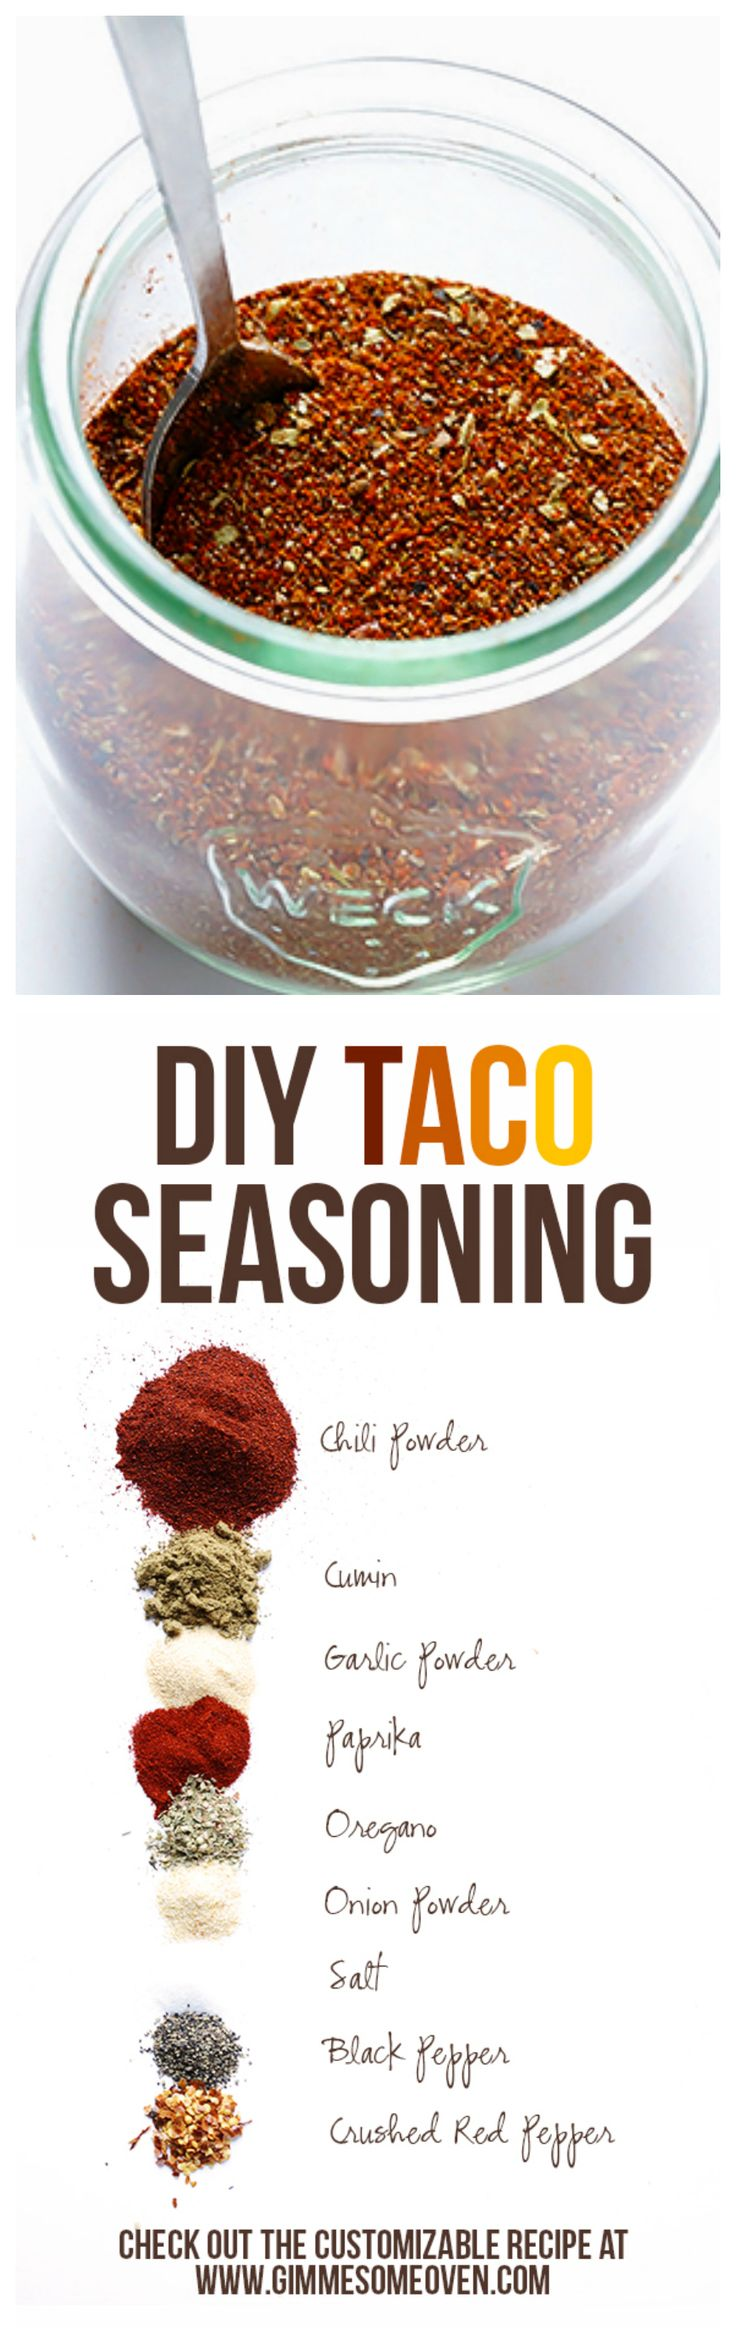 Homemade Taco Seasoning ~ So easy to whip up yourself, and you can make it preservative-free!